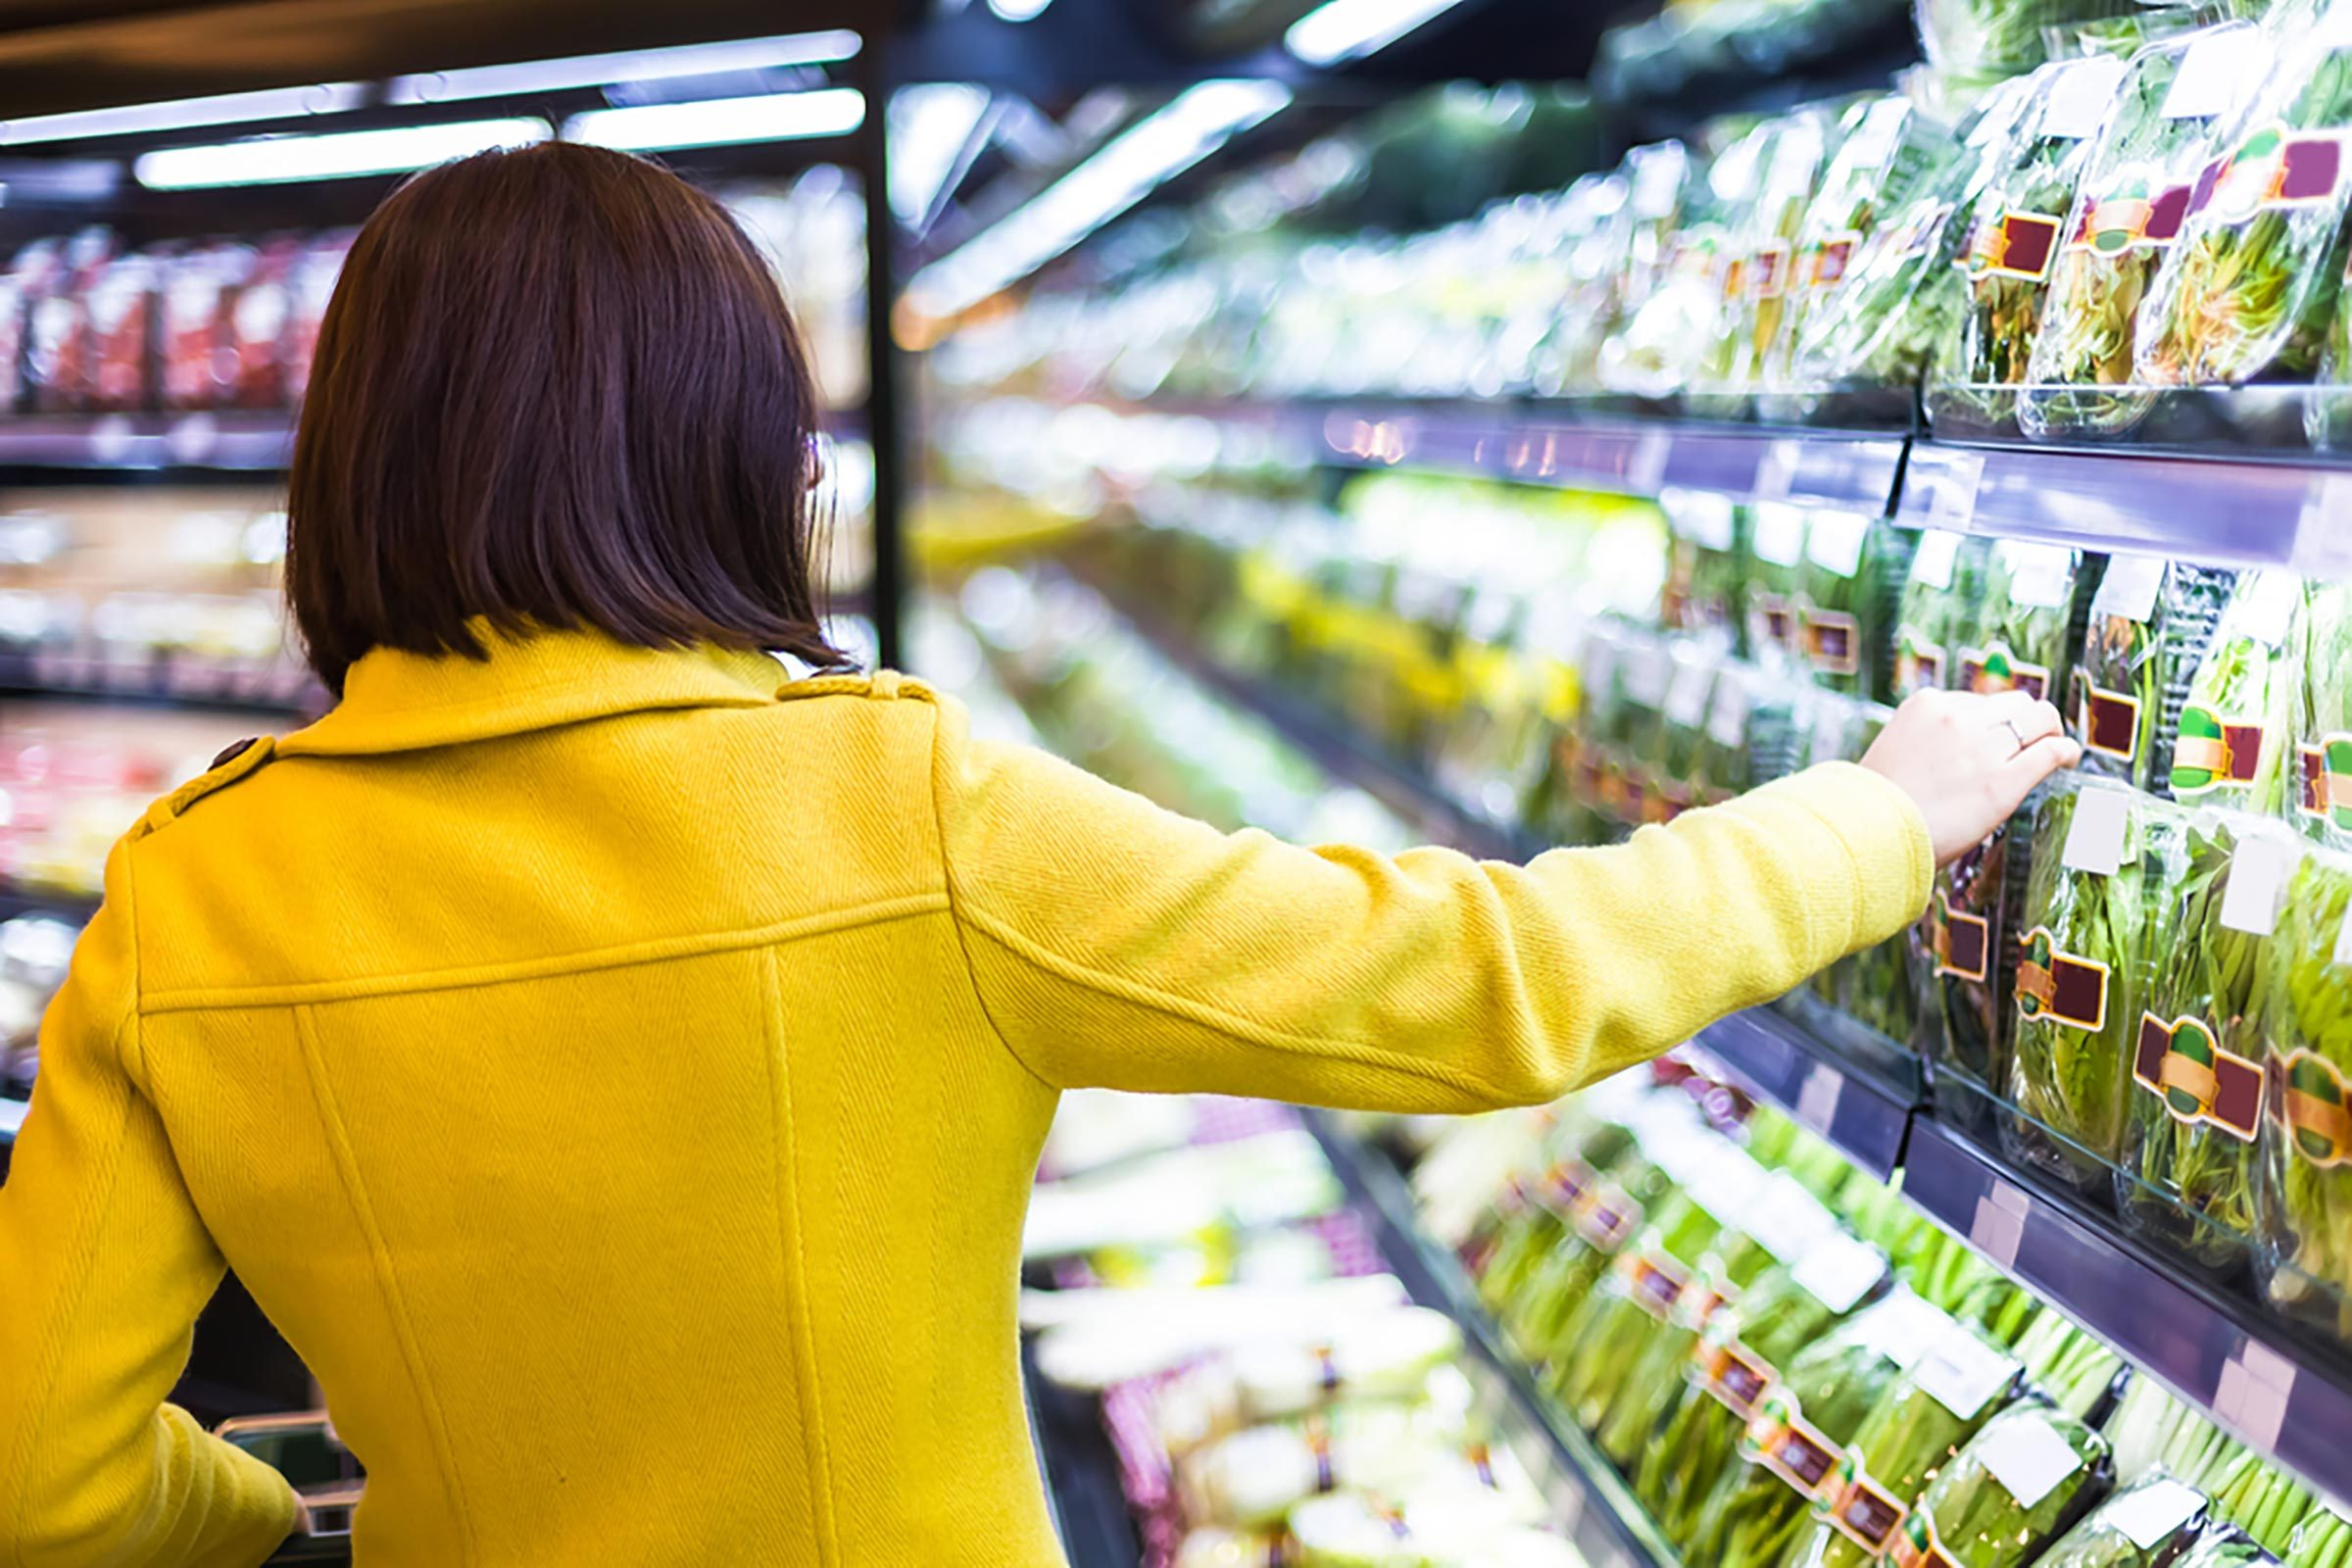 D health food store in l a - 50 Of The Healthiest Foods You Can Find In The Supermarket Reader S Digest Reader S Digest